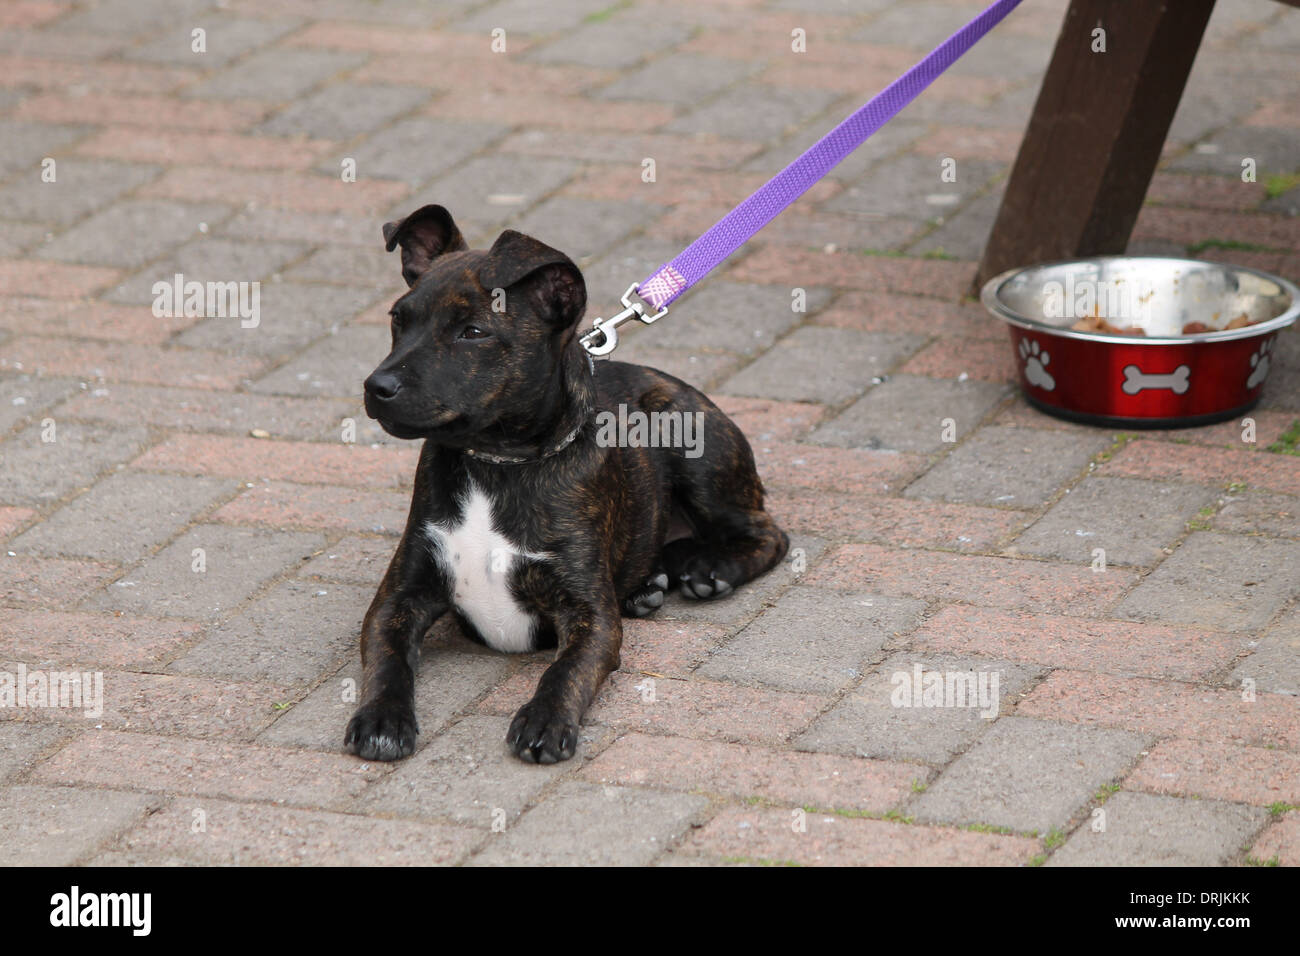 Dark brindle Staffie, Staffordshire Bull Terrier puppy laid on the ground on guard - Stock Image